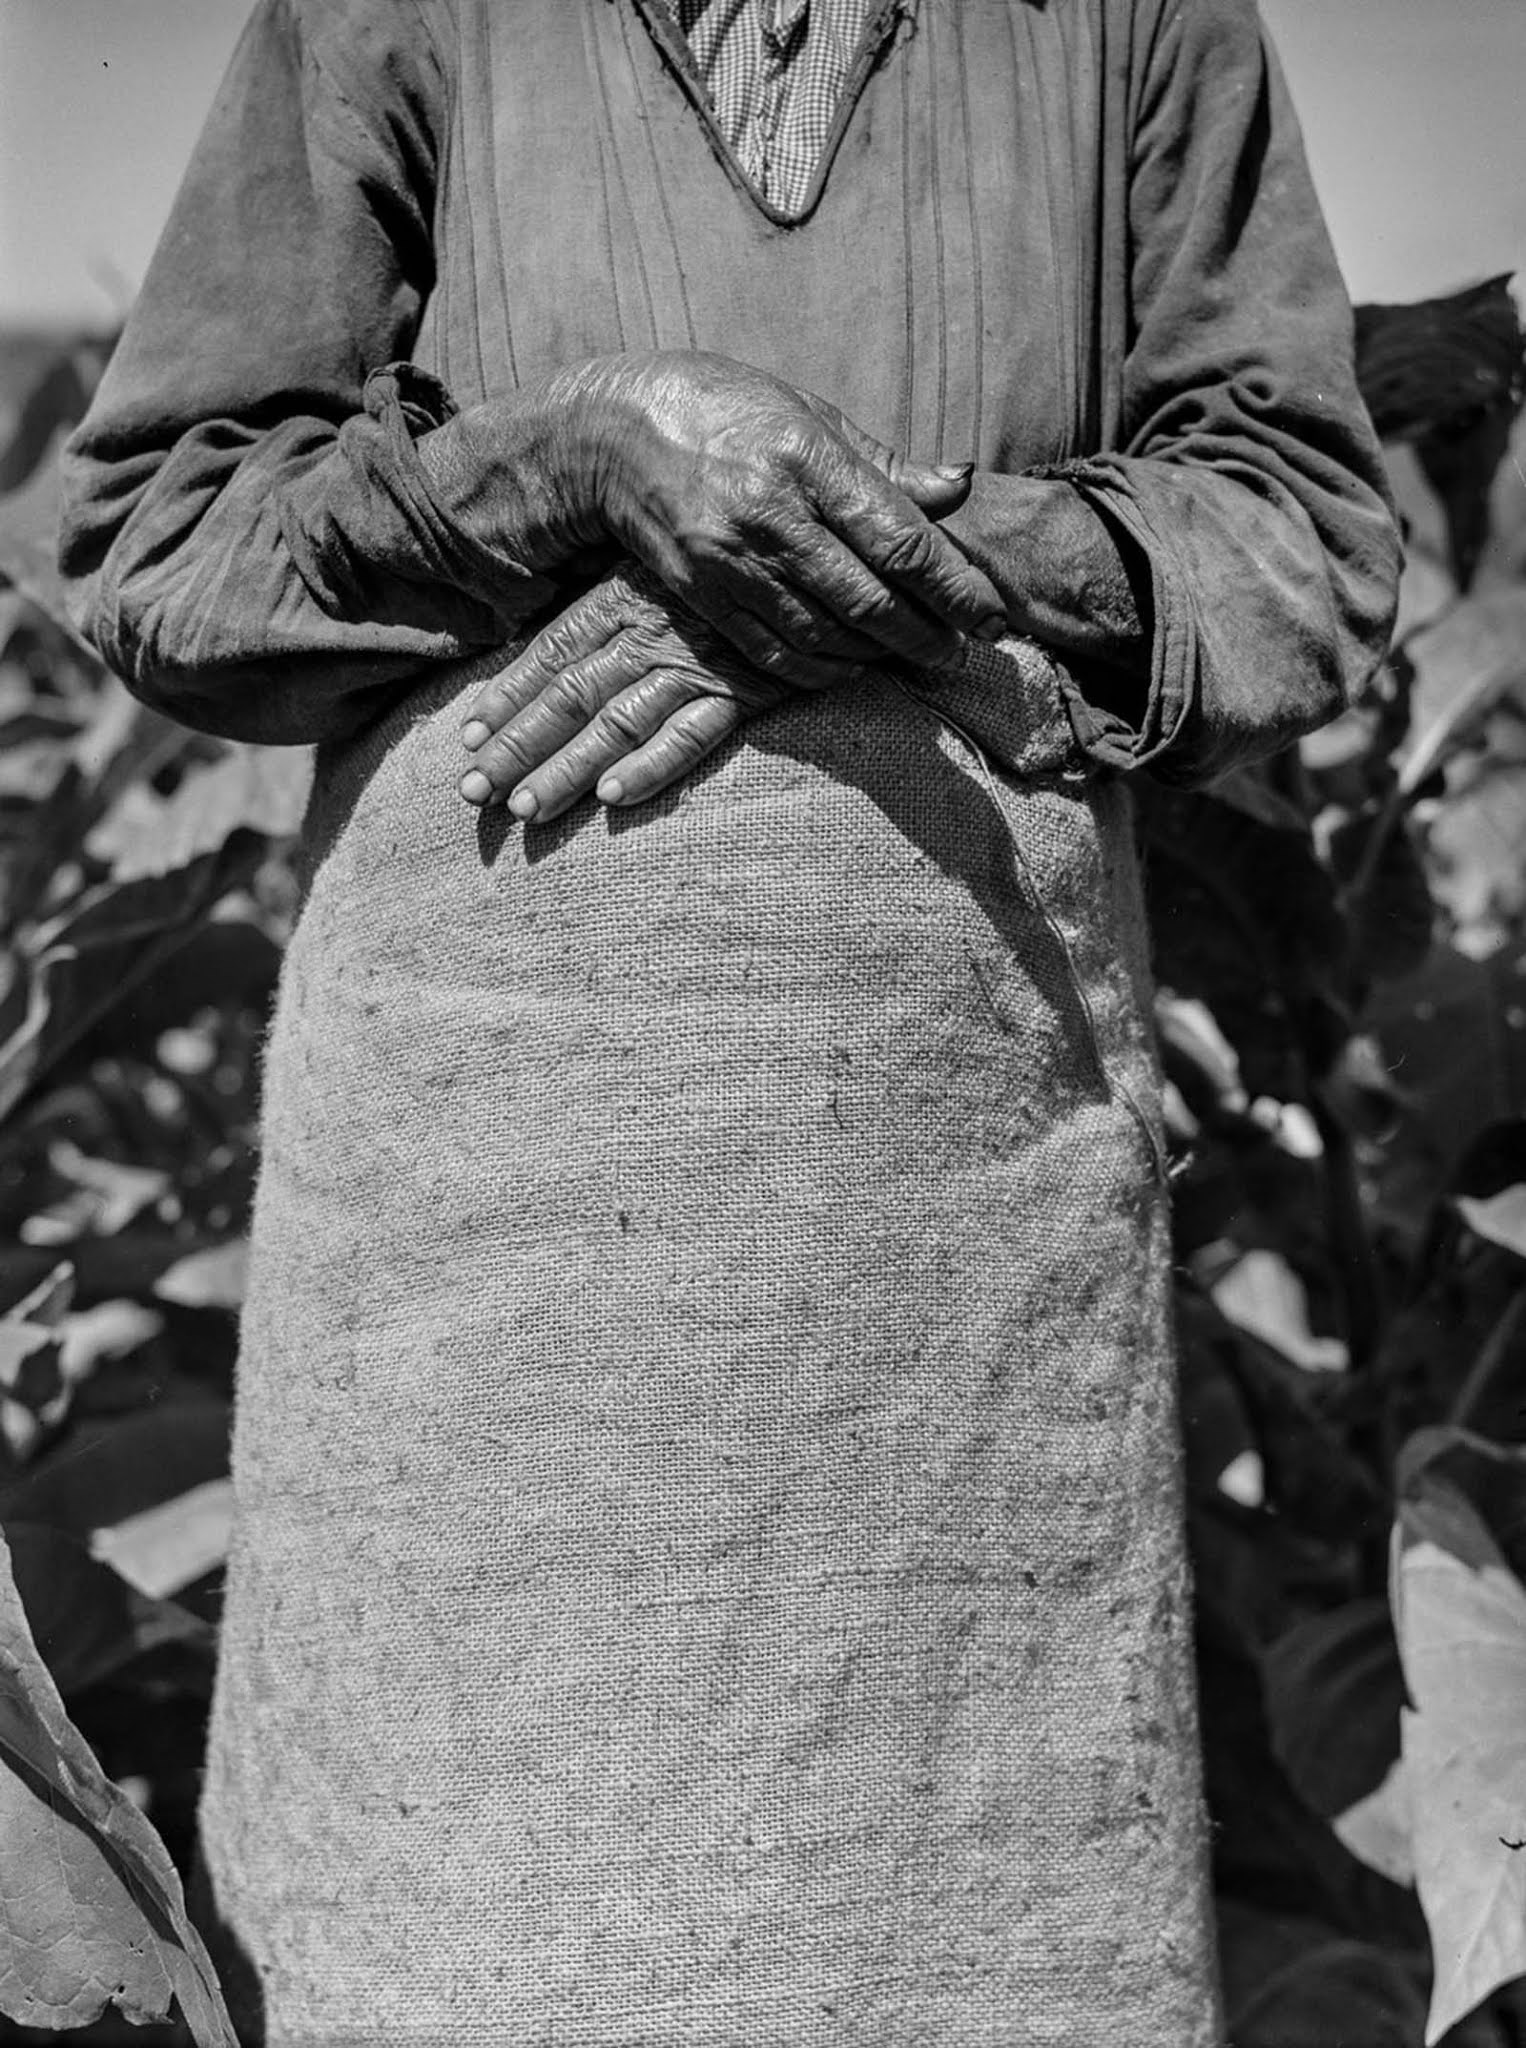 A woman working in a tobacco field near Barranquitas.